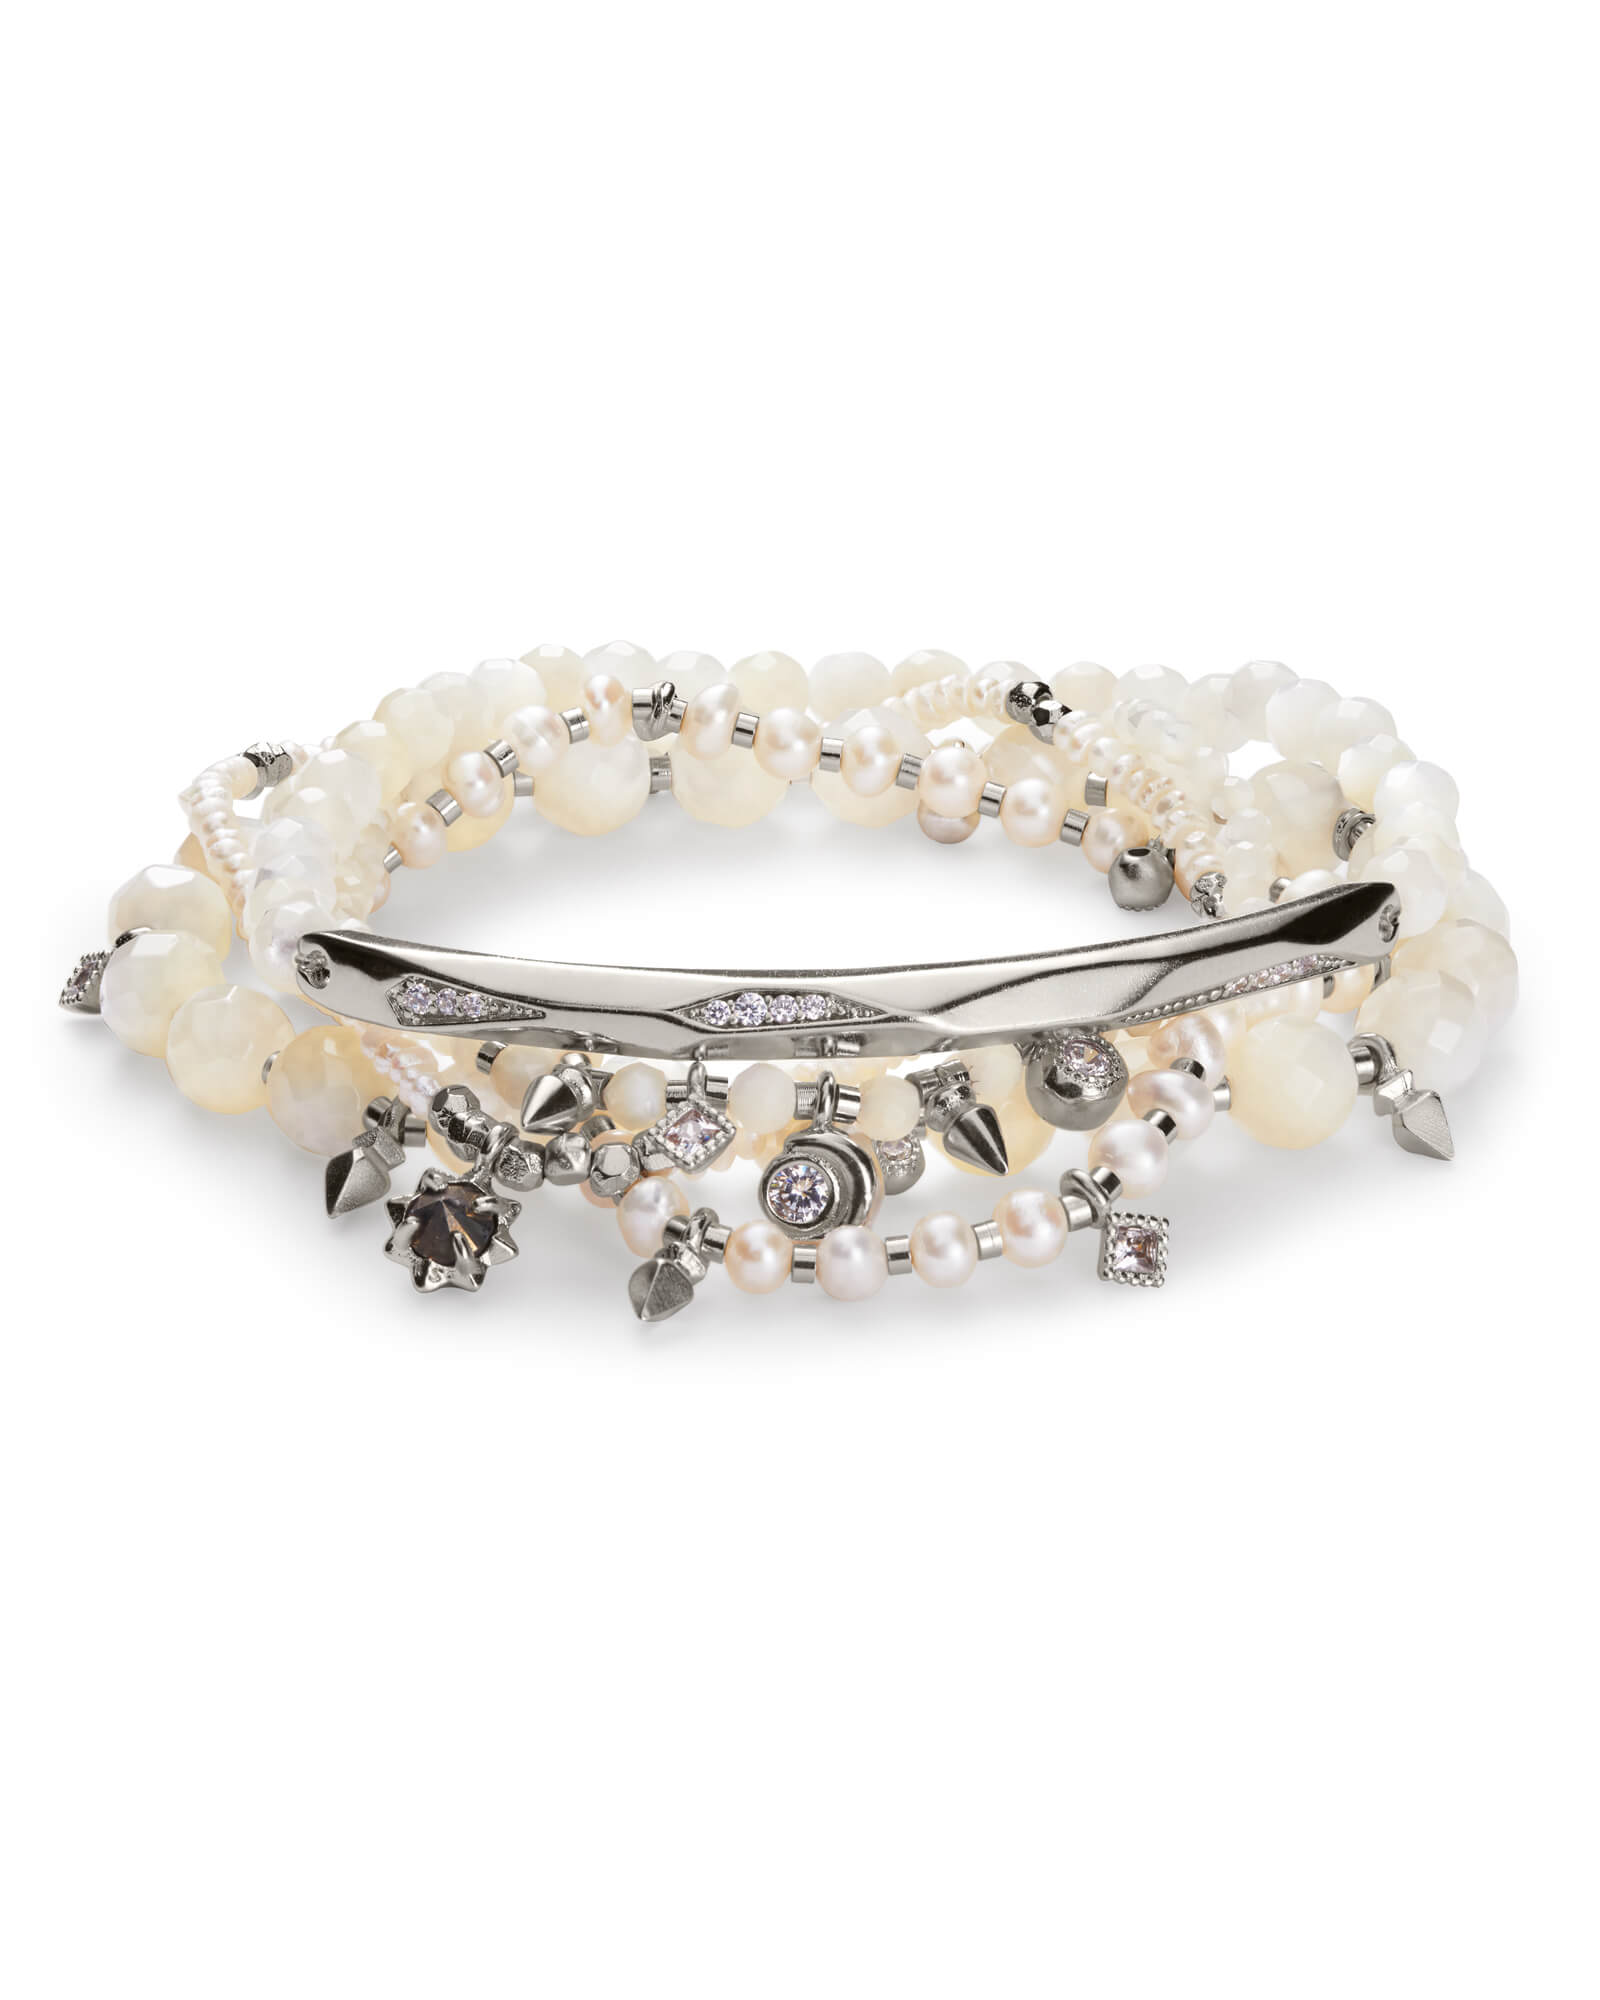 Supak Silver Beaded Bracelet Set Ivory Mother of Pearl Mix